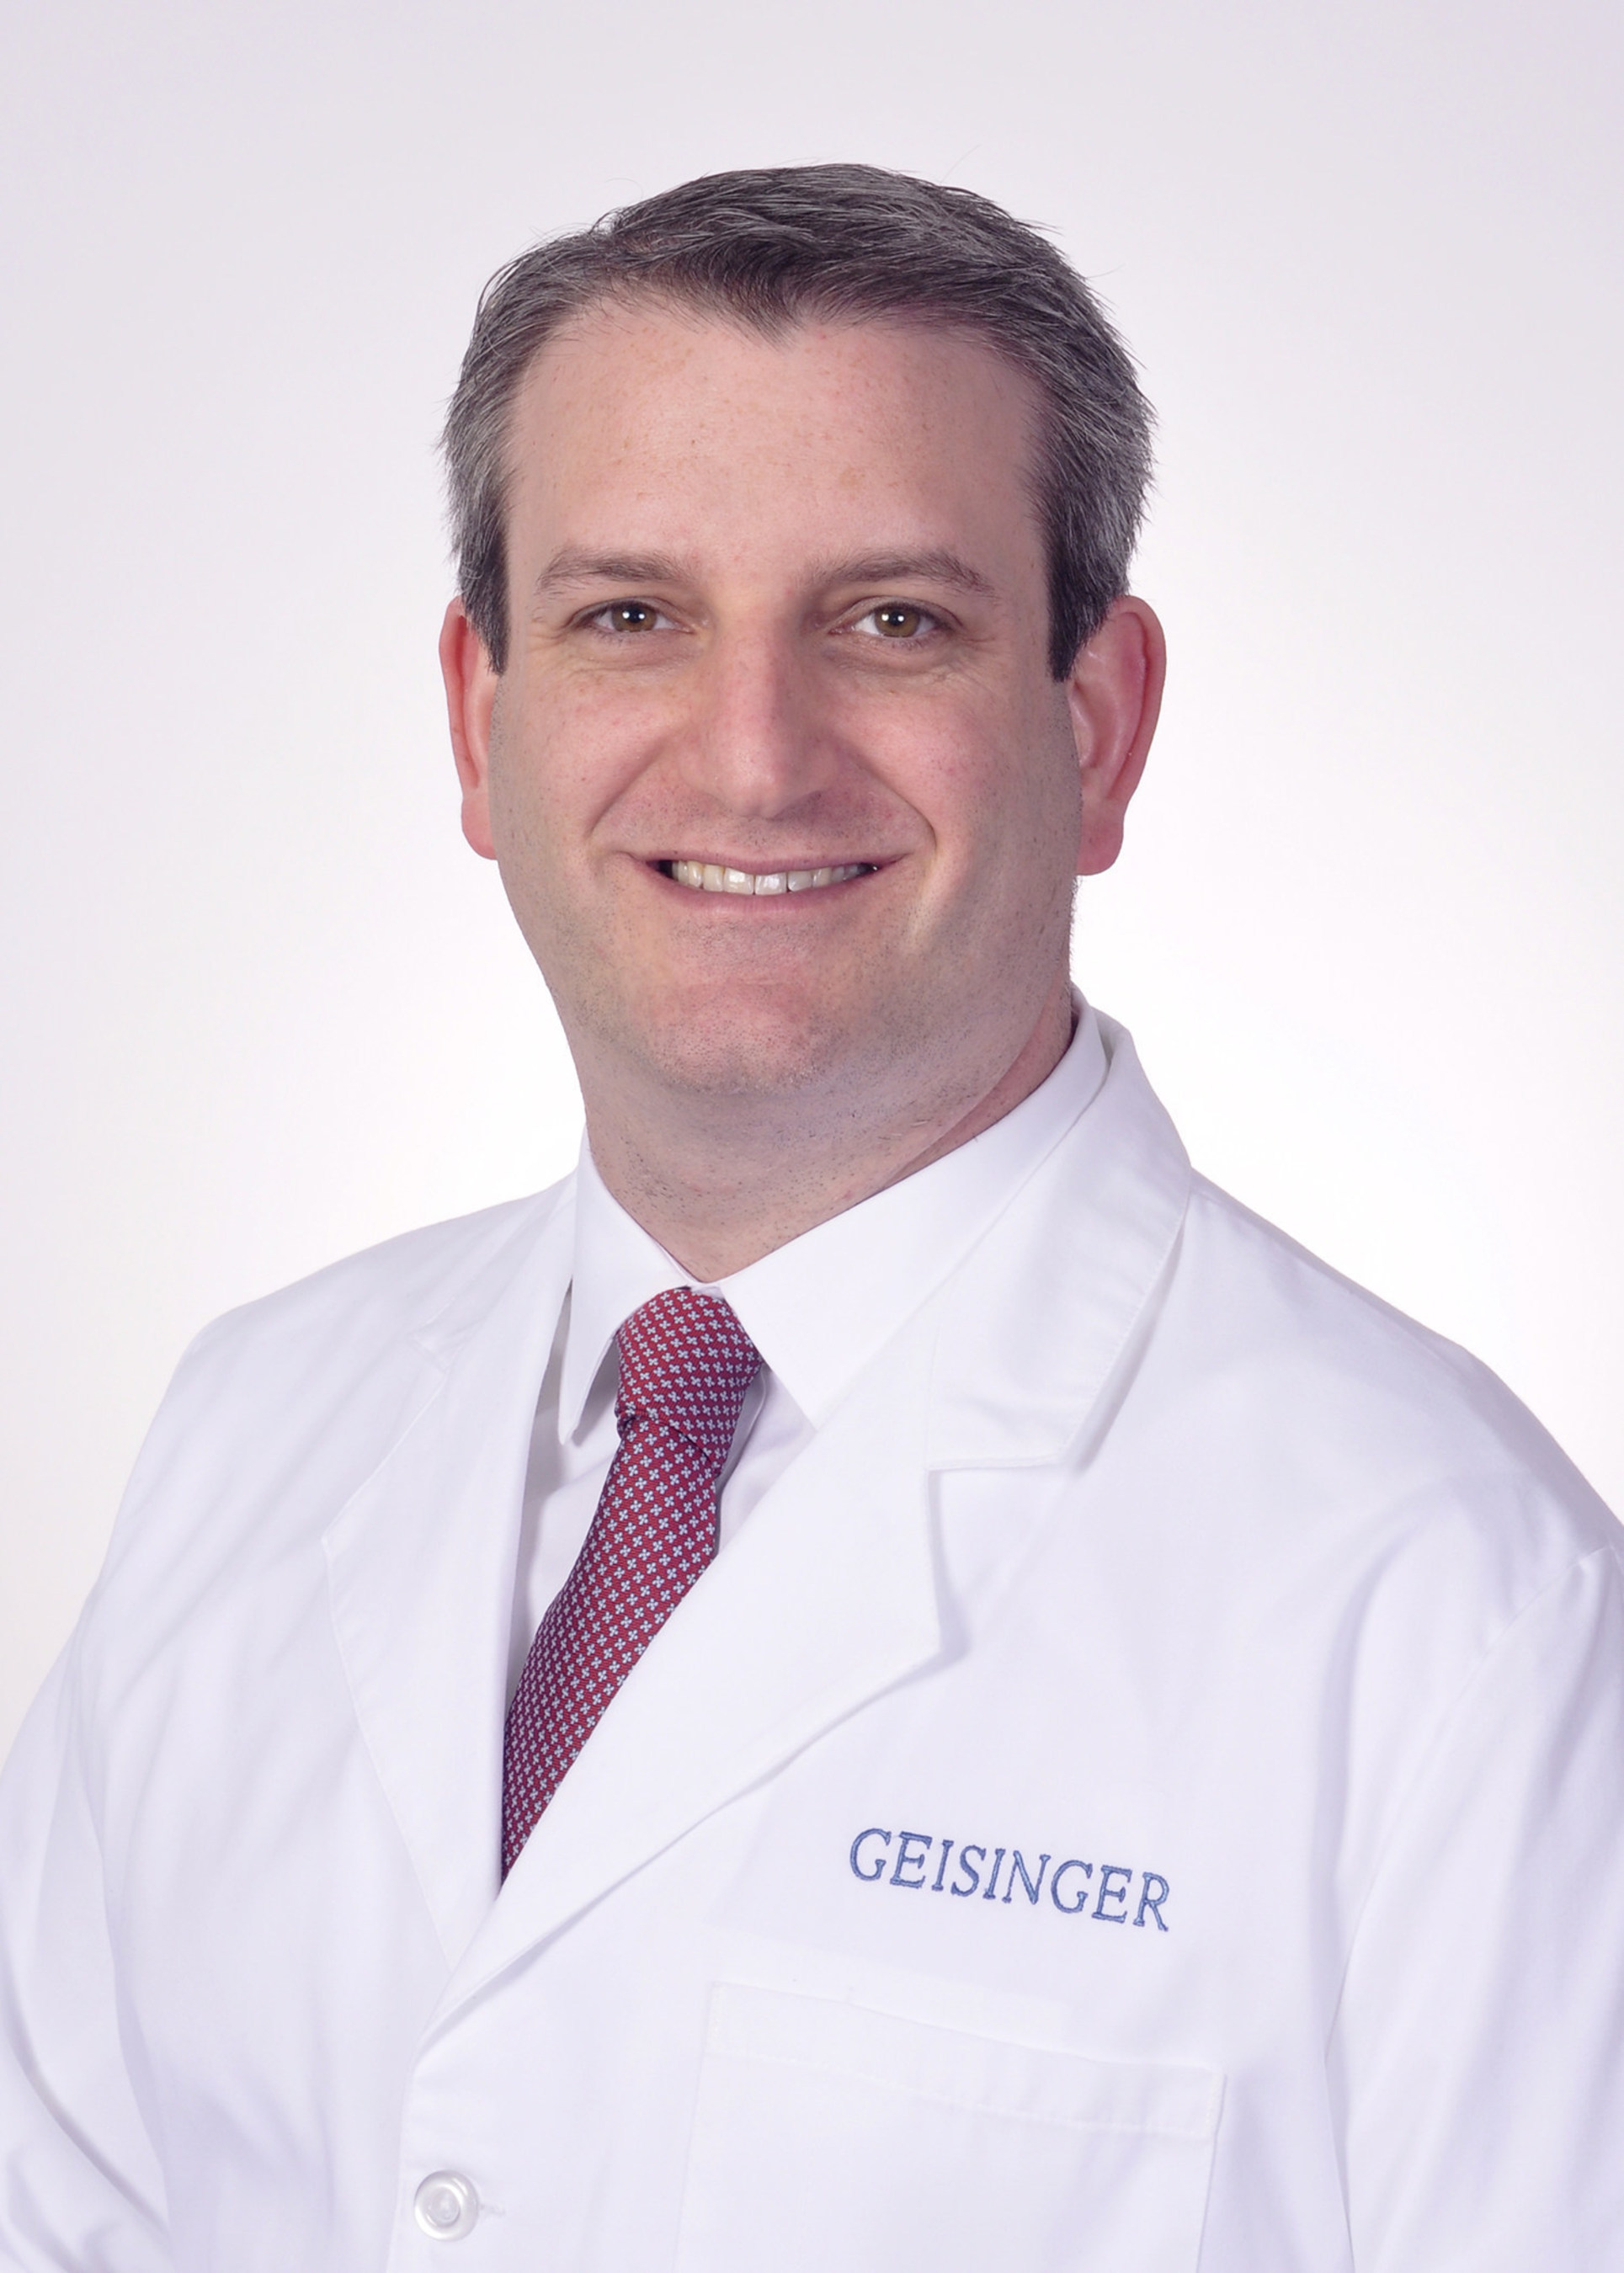 Jonathan Slotkin, M.D., medical director, Geisinger in Motion, director of spinal surgery, Neurosurgery, Geisinger Health System